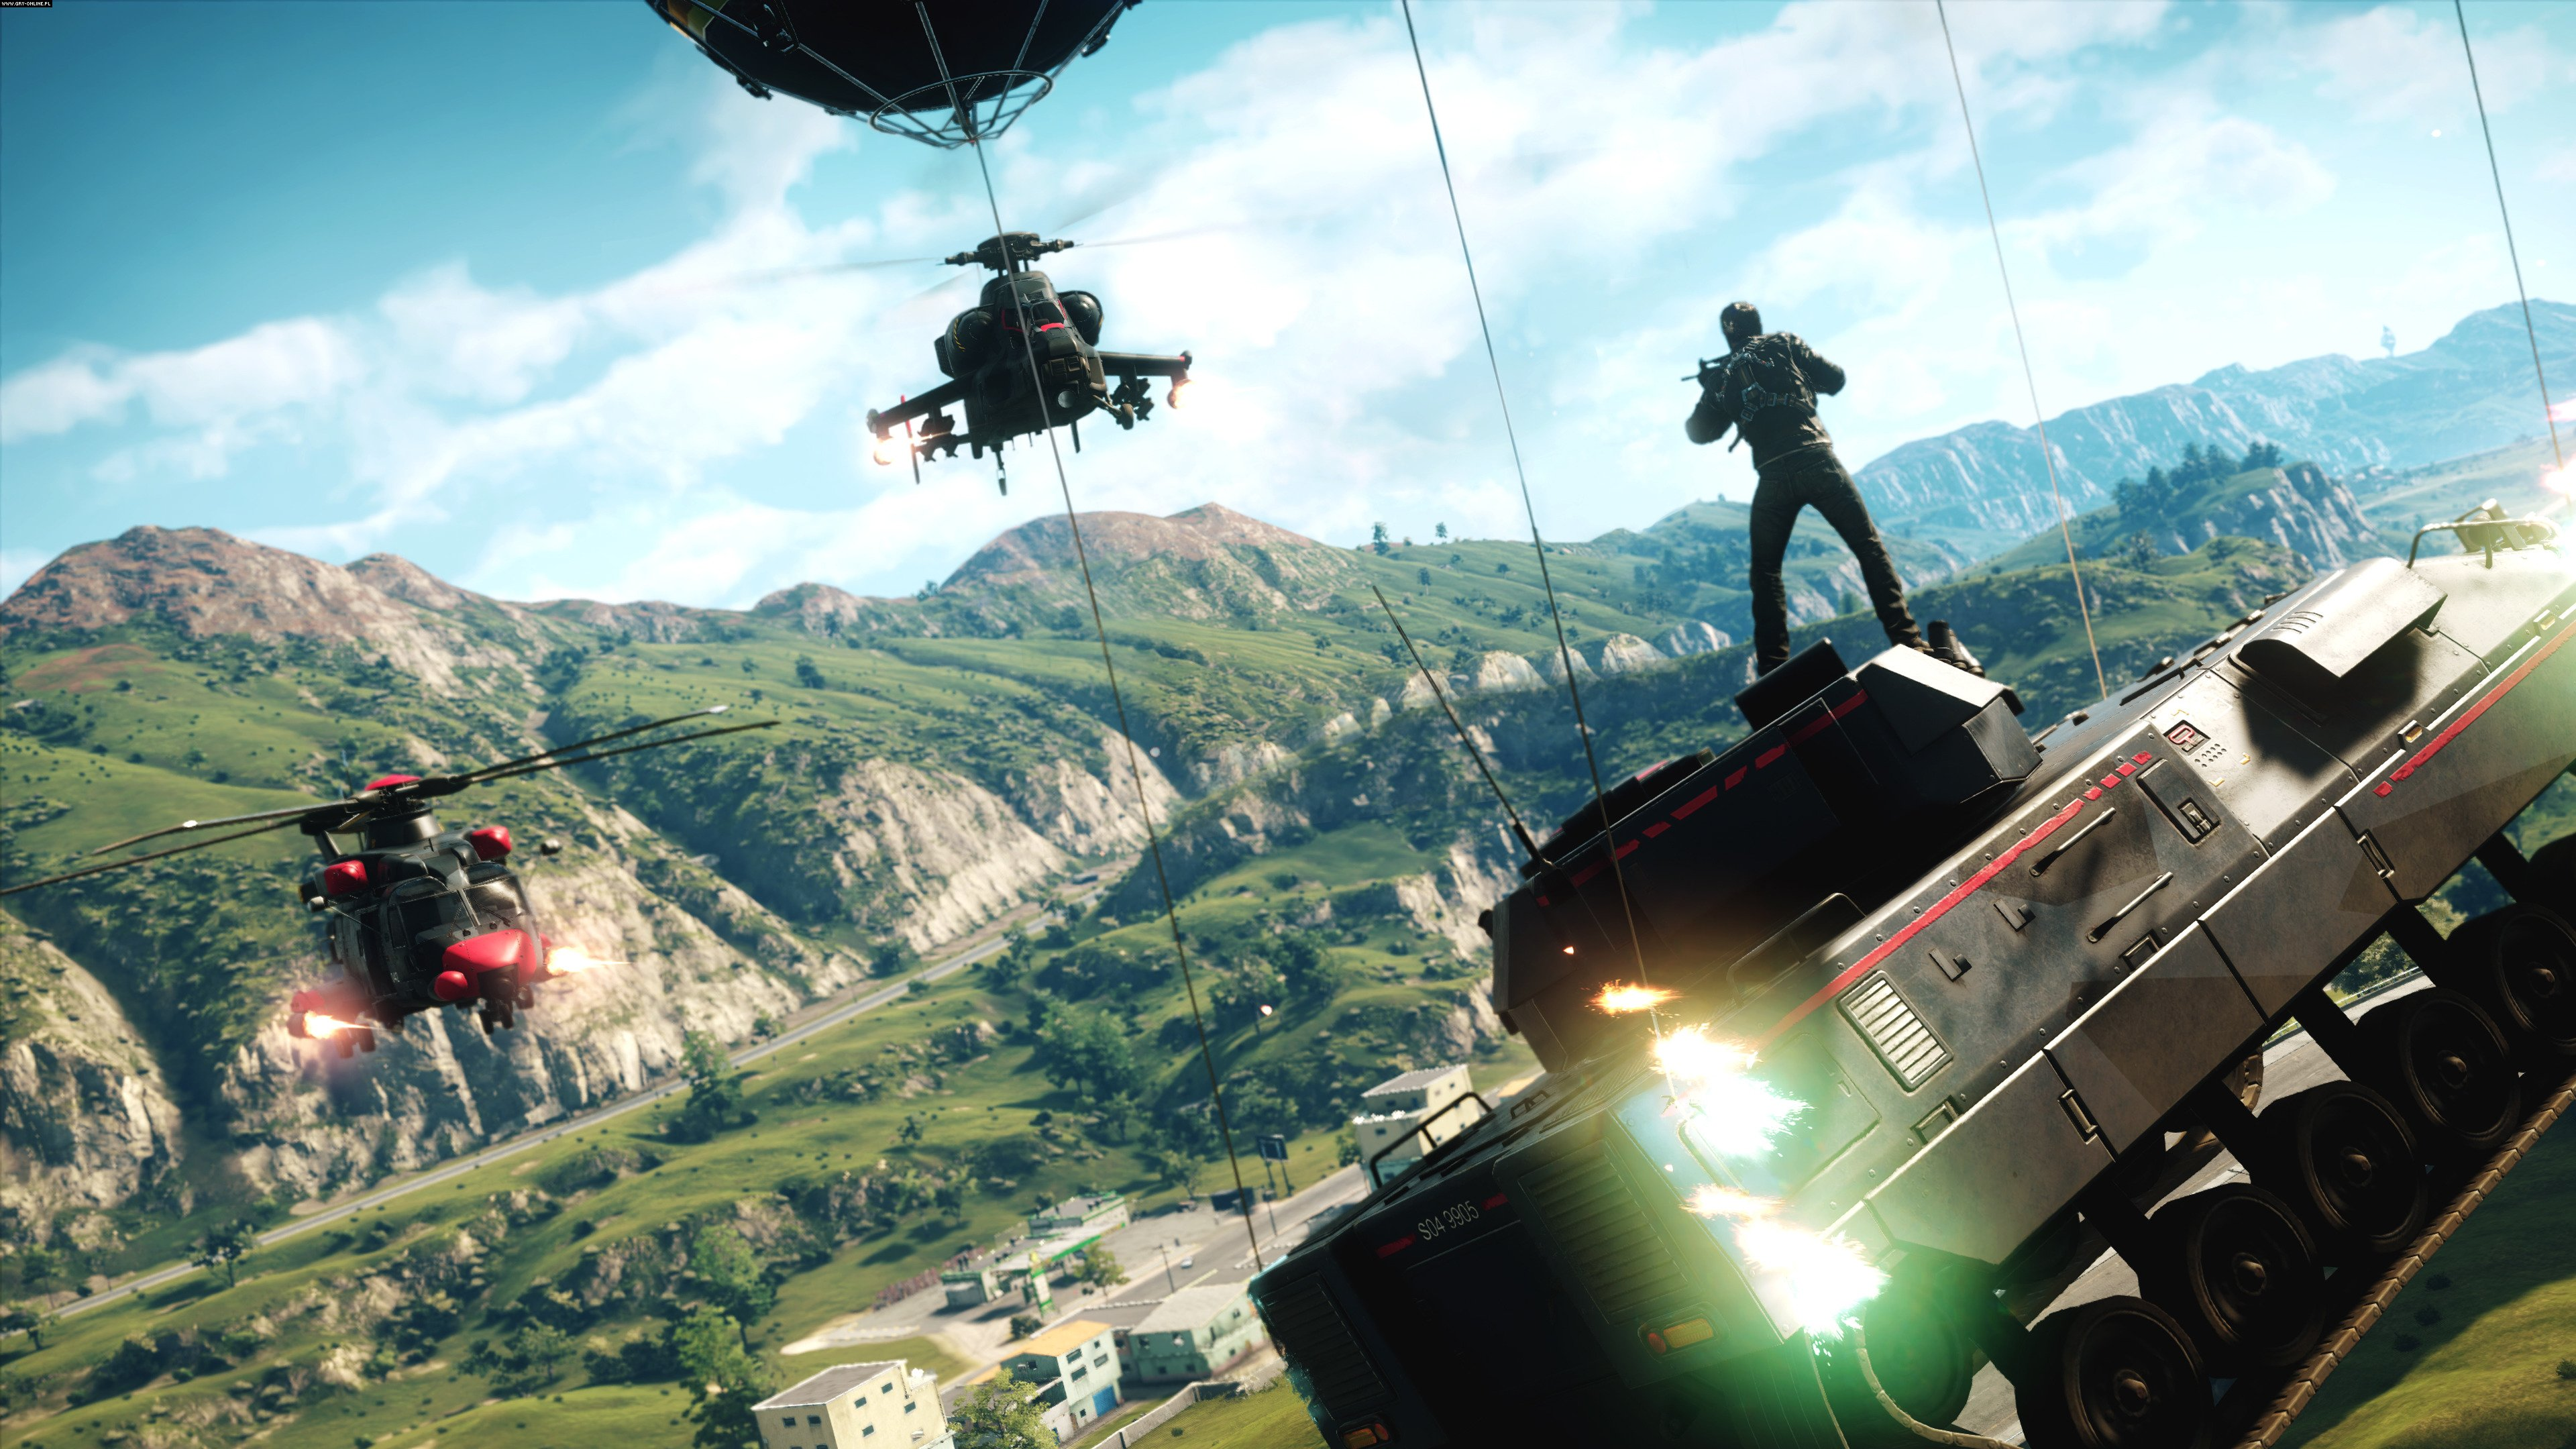 Just Cause 4 PC, PS4, XONE Games Image 3/30, Avalanche Studios, Square-Enix / Eidos